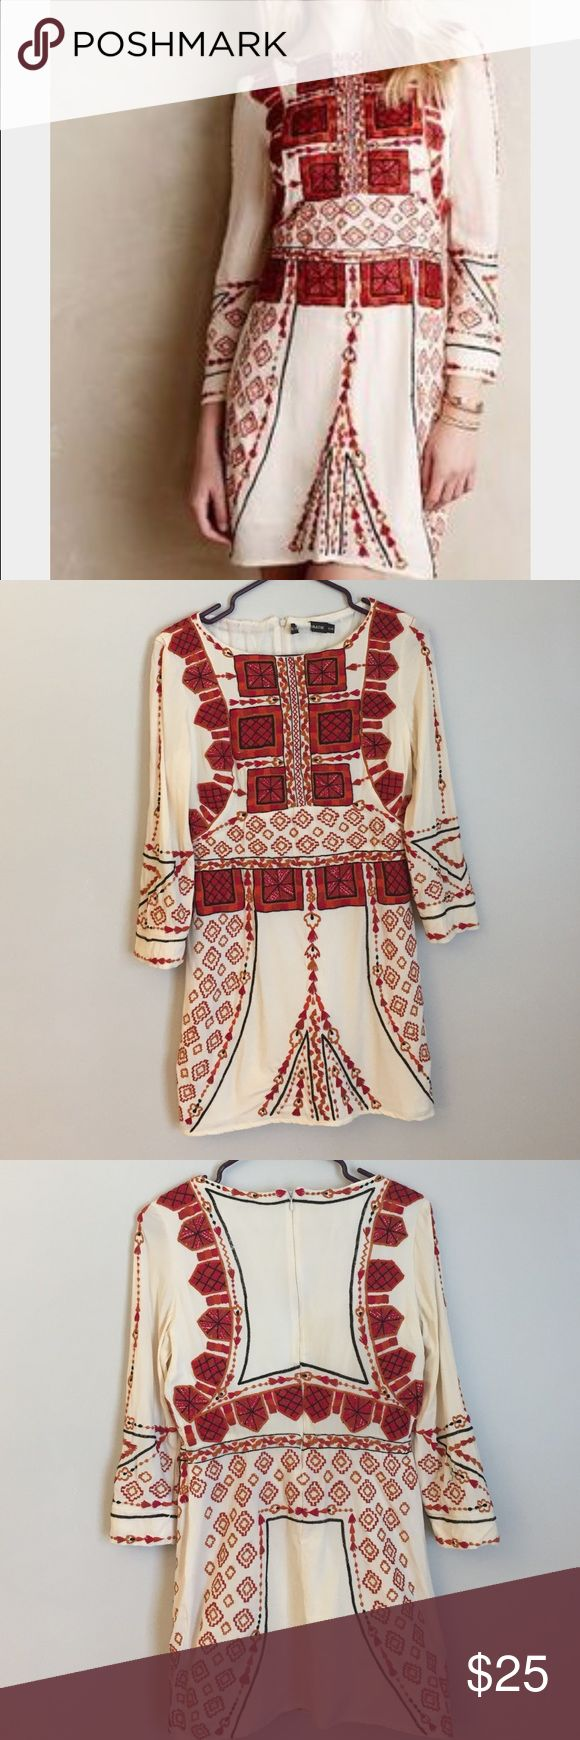 Anthropologie Antik Batik Embroidered Dress This dress has a few flaws. A couple marks on the back and a tear at the bottom of the zipper. None of these are very noticeable when on. Everyone will be looking at the beautiful Embroidery.  Would fit a 6/8 Antik Batik Dresses